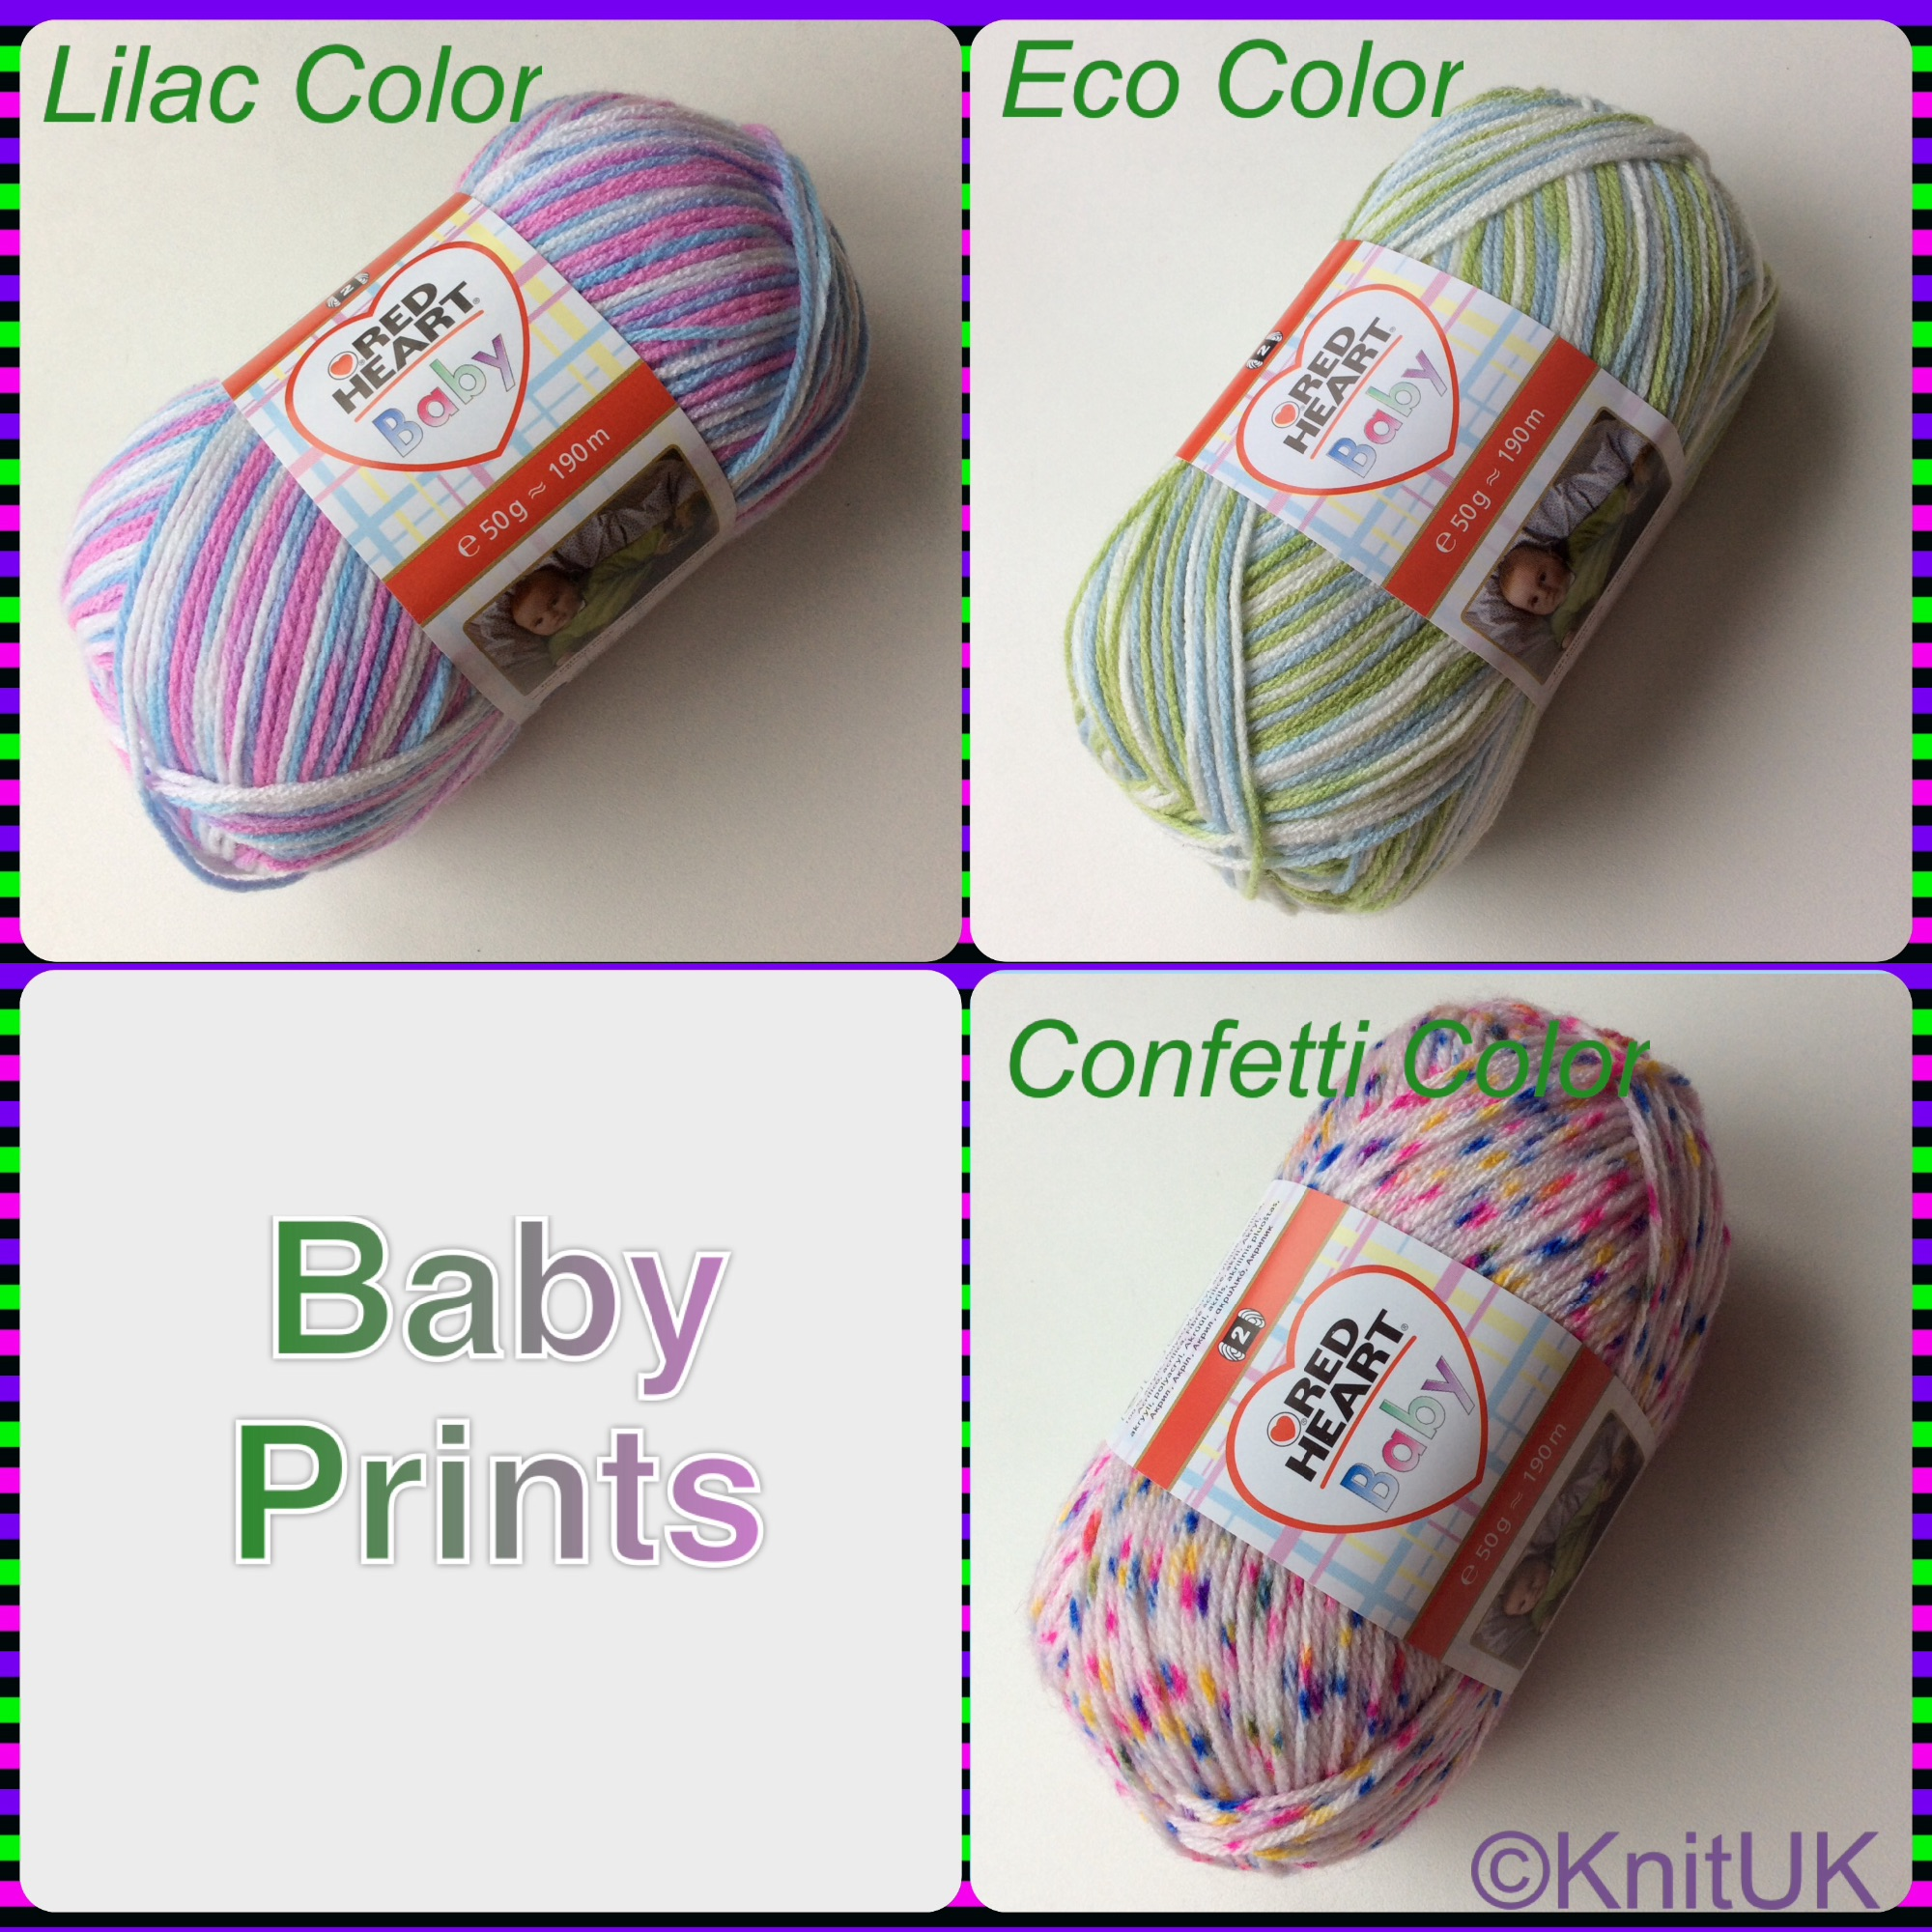 Red Heart Baby prints colours lilac eco confetti color